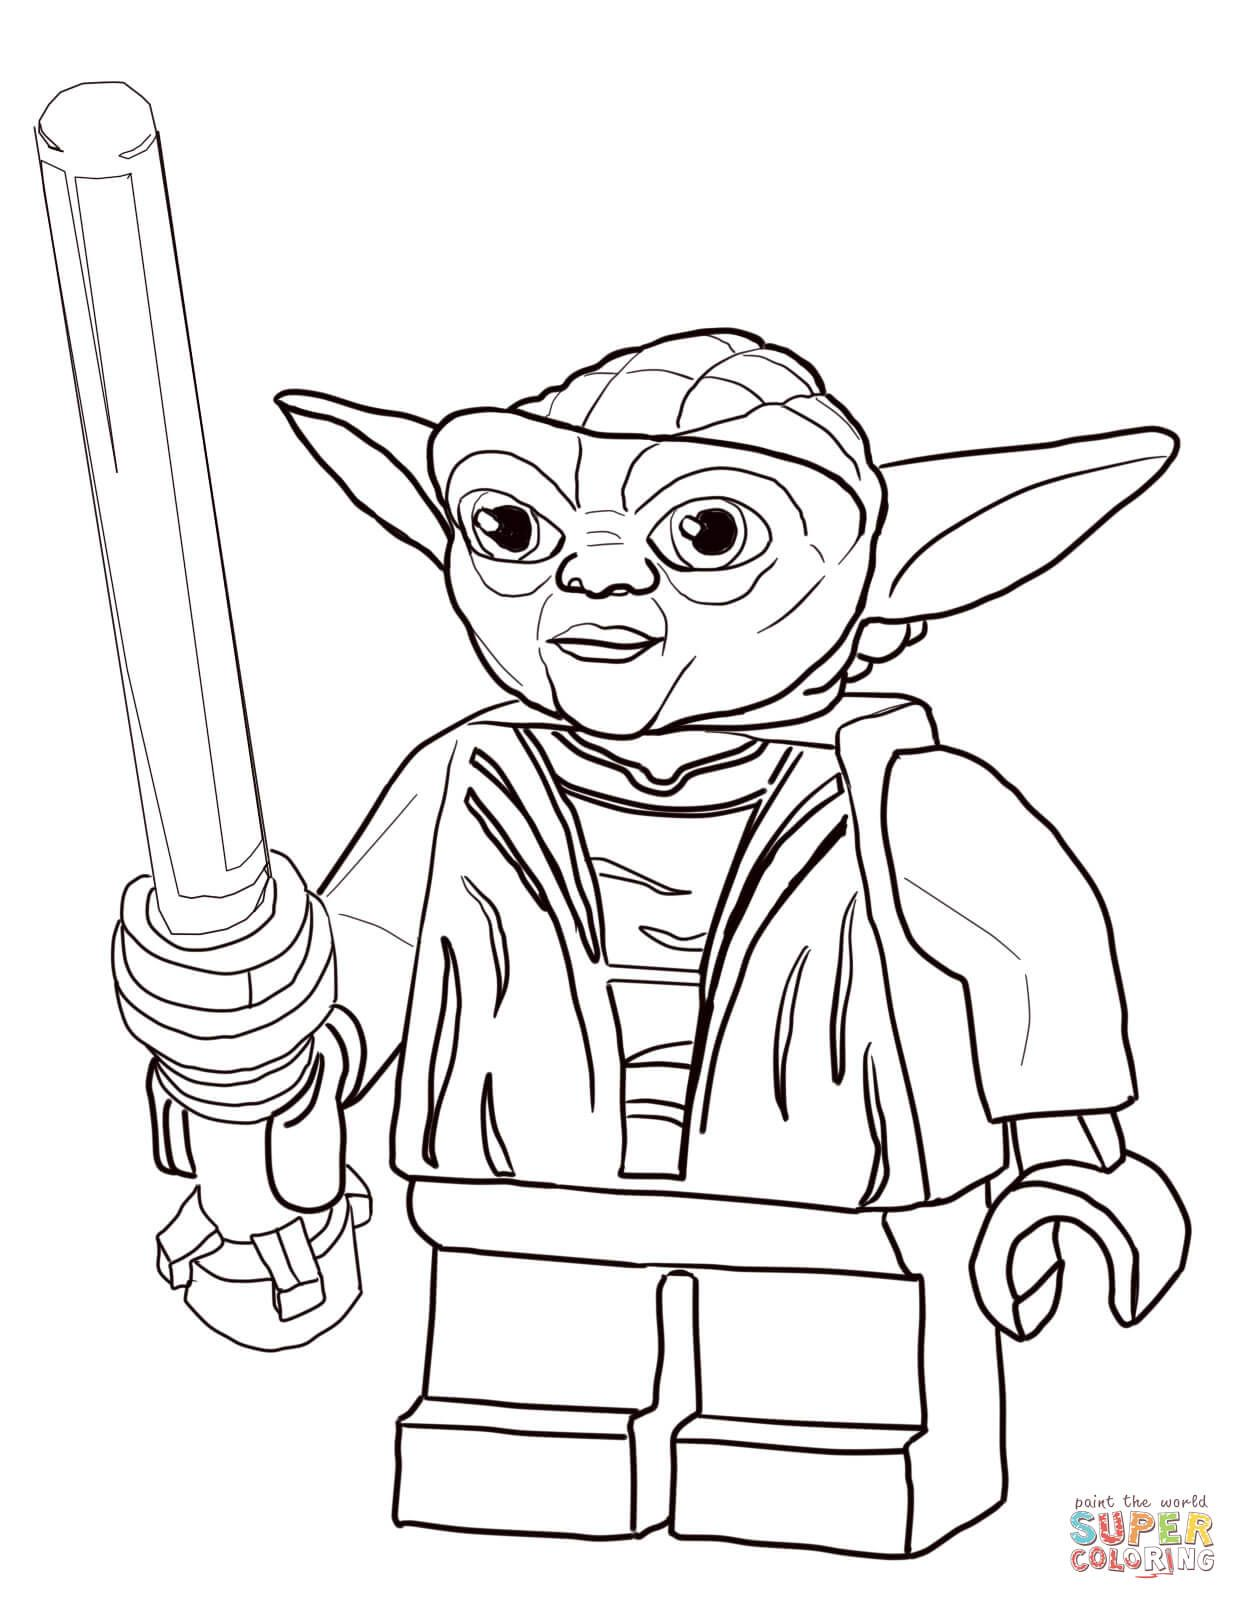 Lego Star Wars Master Yoda | Super Coloring | LineArt: Star Wars ...